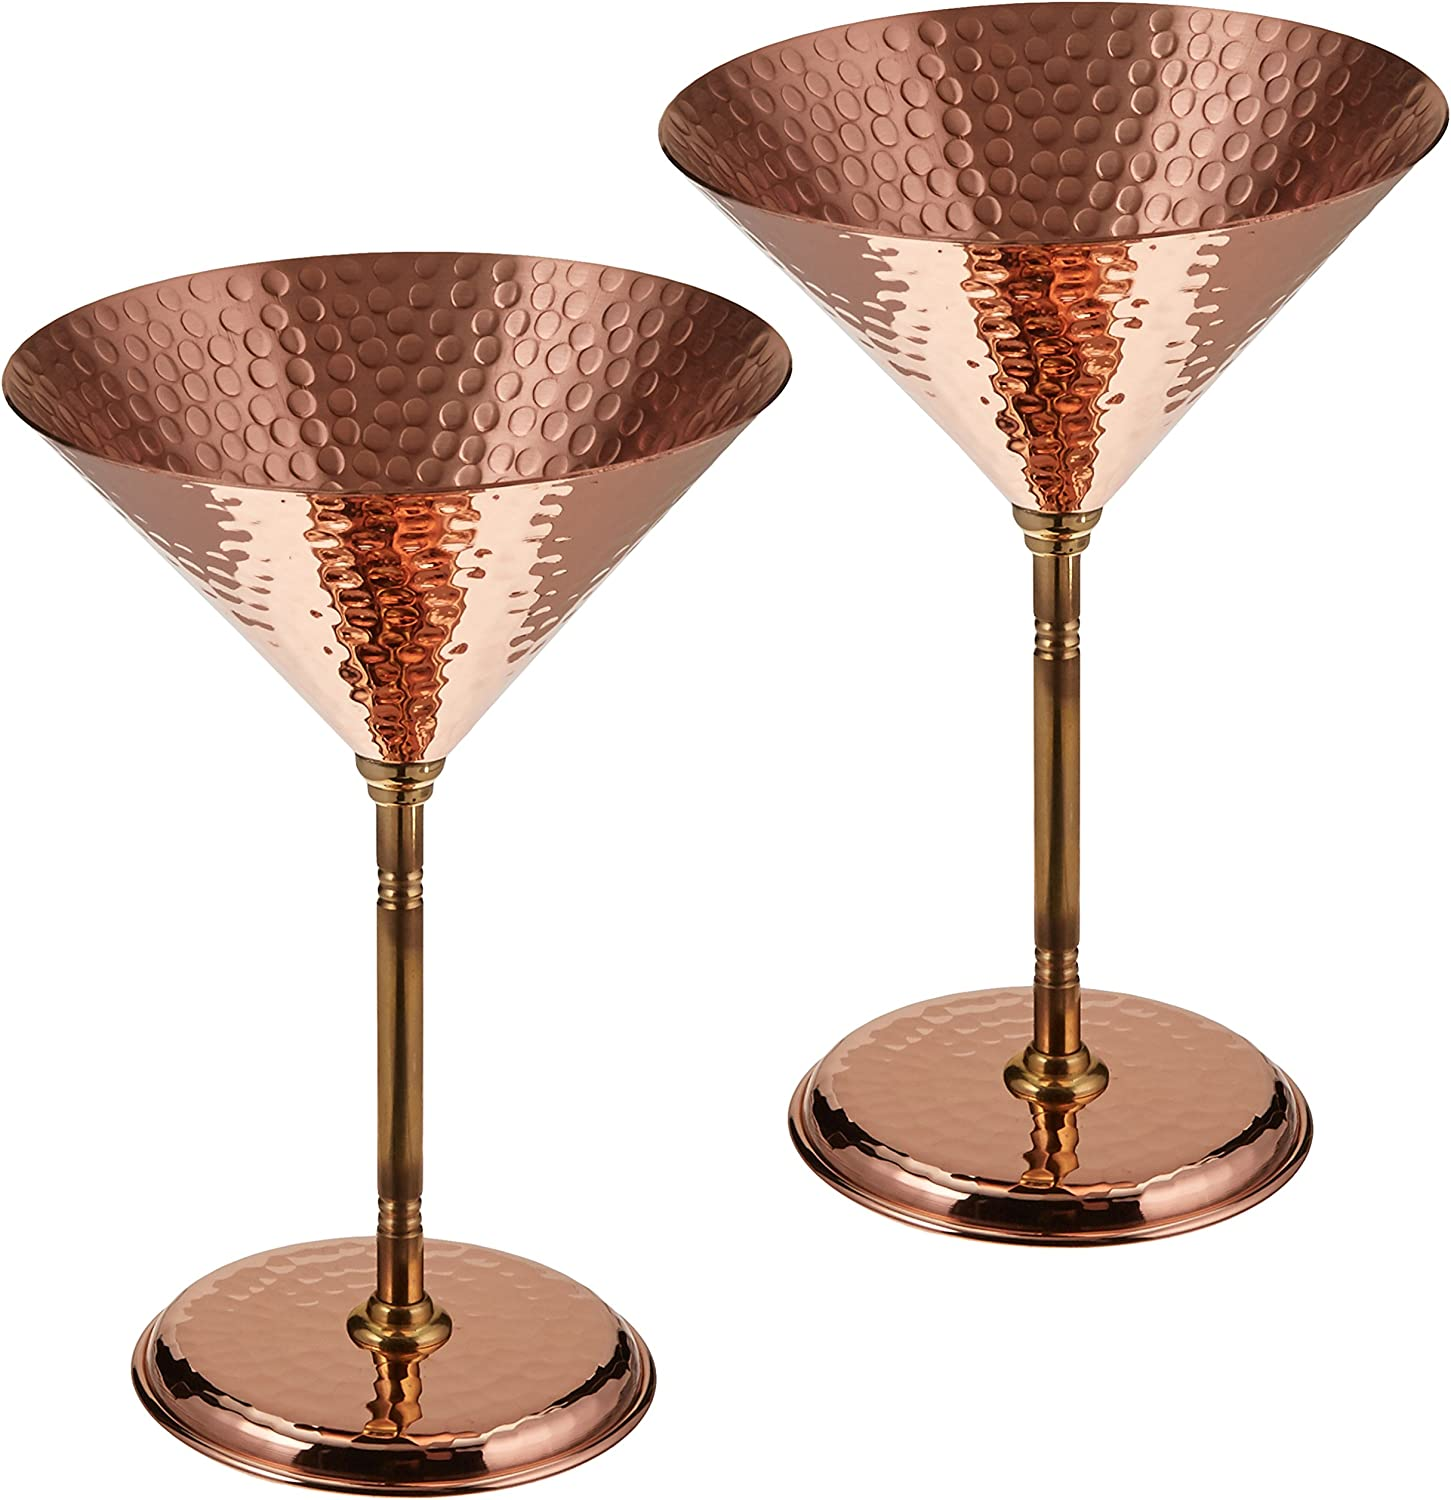 2 X DEMMEX 2017 Gorgeous Hammered Copper Martini Goblets Glasses 10 Oz Unlined Copper